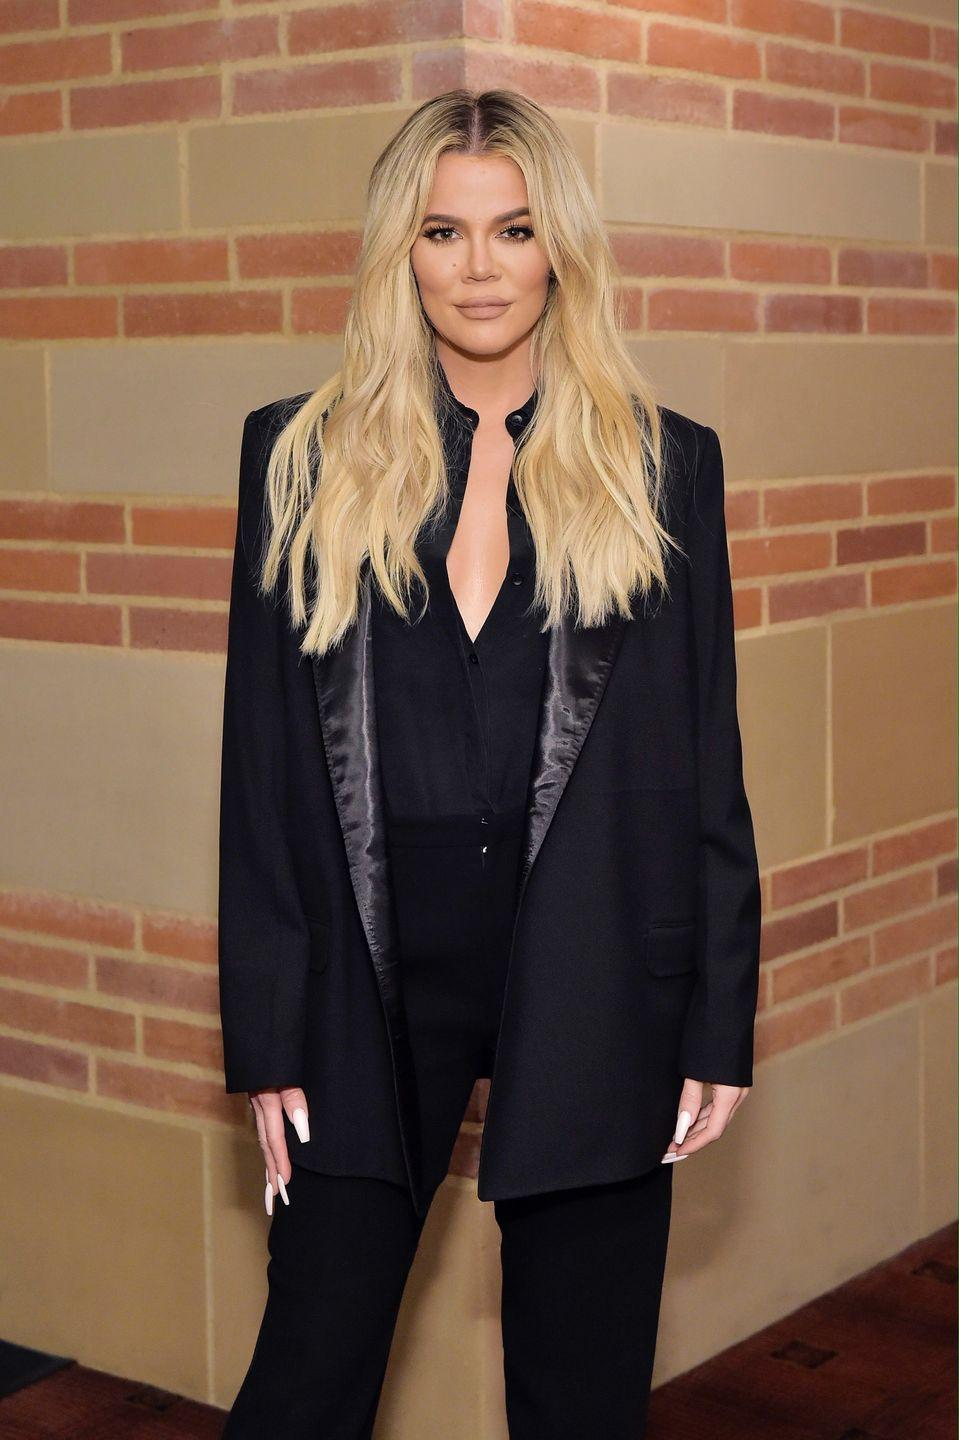 """<p>""""For me, everyone says, 'Oh my gosh, she's had her third face transplant,' but I've had one nose job,"""" Kardashian admitted during the <a href=""""https://people.com/health/khloe-kardashian-plastic-surgery-nose-job-injections-keeping-up-with-the-kardashians-reunion/"""" rel=""""nofollow noopener"""" target=""""_blank"""" data-ylk=""""slk:KUWTK series finale reunion"""" class=""""link rapid-noclick-resp""""><em>KUWTK </em>series finale reunion</a><em>.</em> """"And everyone gets so upset, like, why don't I talk about it. No one's ever asked me."""" On her talk show <em><a href=""""http://www.dailymail.co.uk/tvshowbiz/article-3508148/My-face-f-ed-Khloe-Kardashian-admits-facial-fillers-went-wrong-look-crazy.html"""" rel=""""nofollow noopener"""" target=""""_blank"""" data-ylk=""""slk:Kocktails With Khloe"""" class=""""link rapid-noclick-resp"""">Kocktails With Khloe</a>,</em> the star also admitted to having facial fillers dissolved. """"My face was so fucked I had to go and get this whole thing dissolved,"""" she said. """"It was a bummer and now I'm afraid to do it again. And I'm almost like, I swear things are still in my face.""""</p>"""